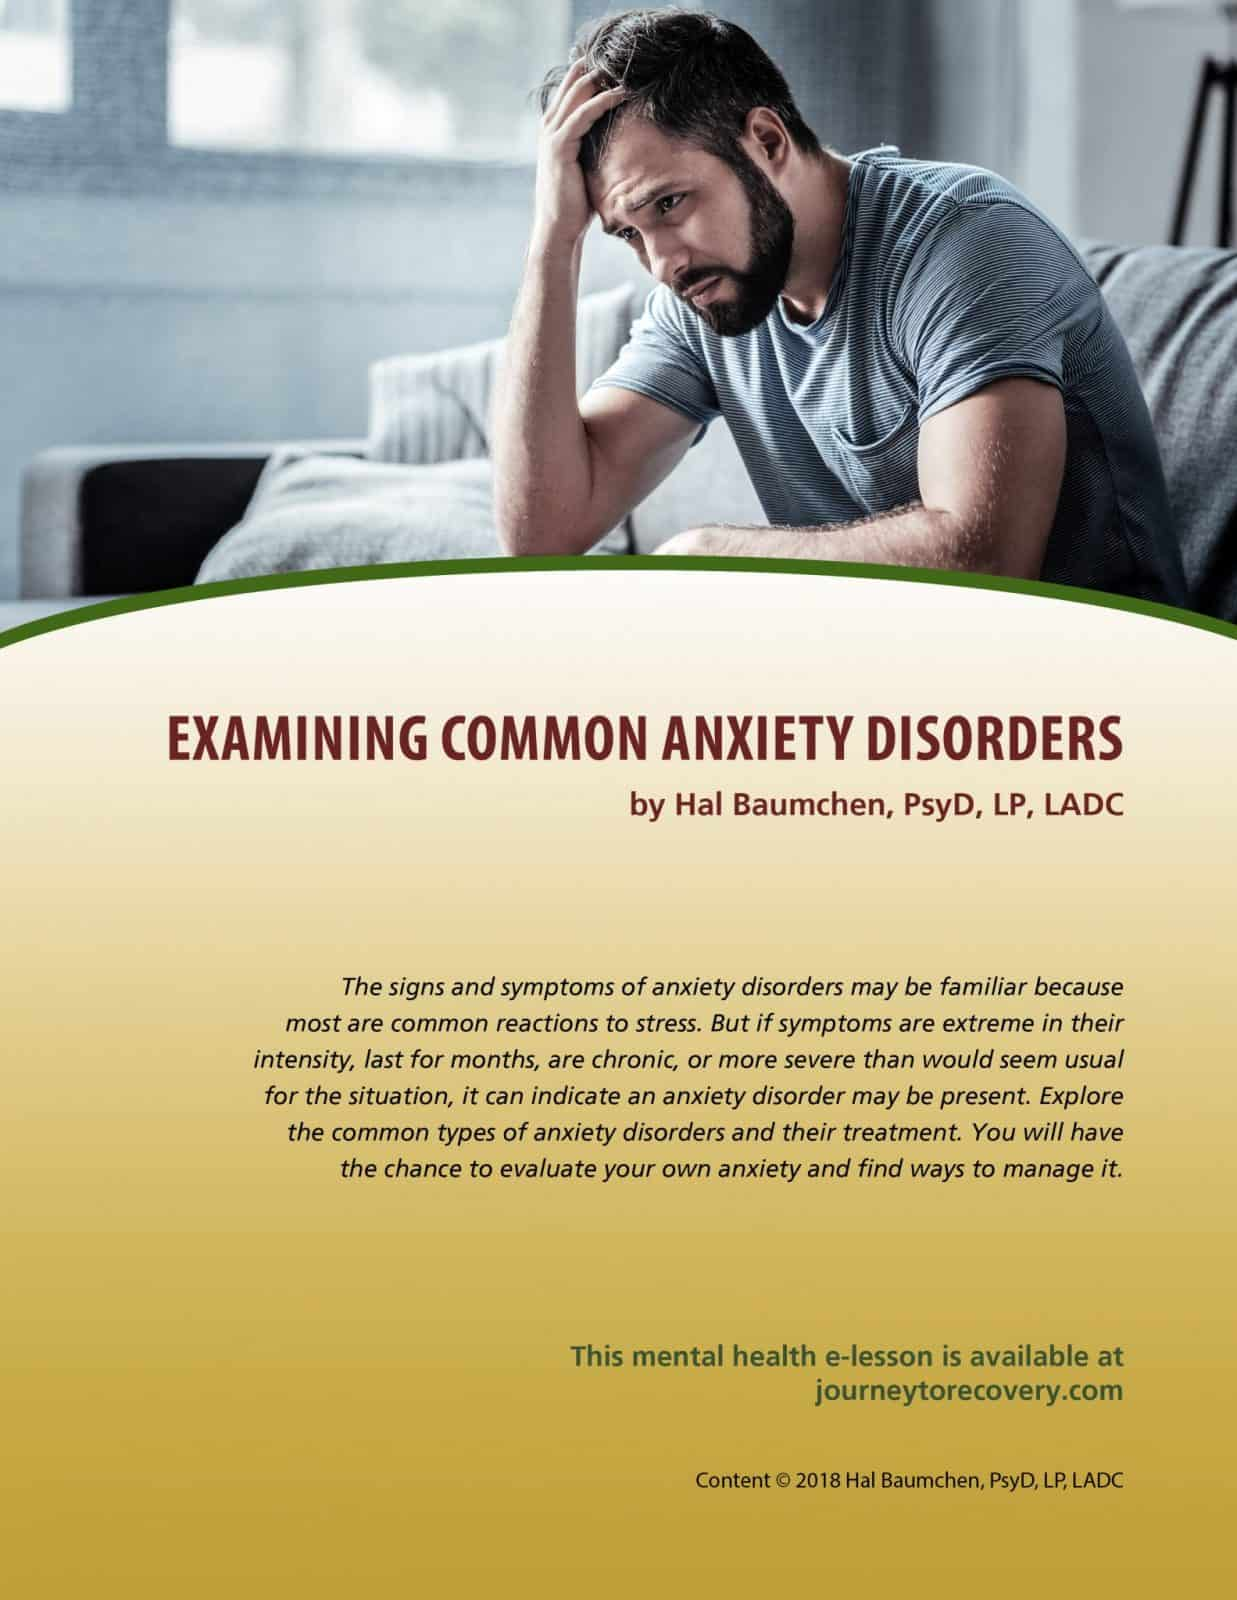 Examining Common Anxiety Disorders Mh Lesson